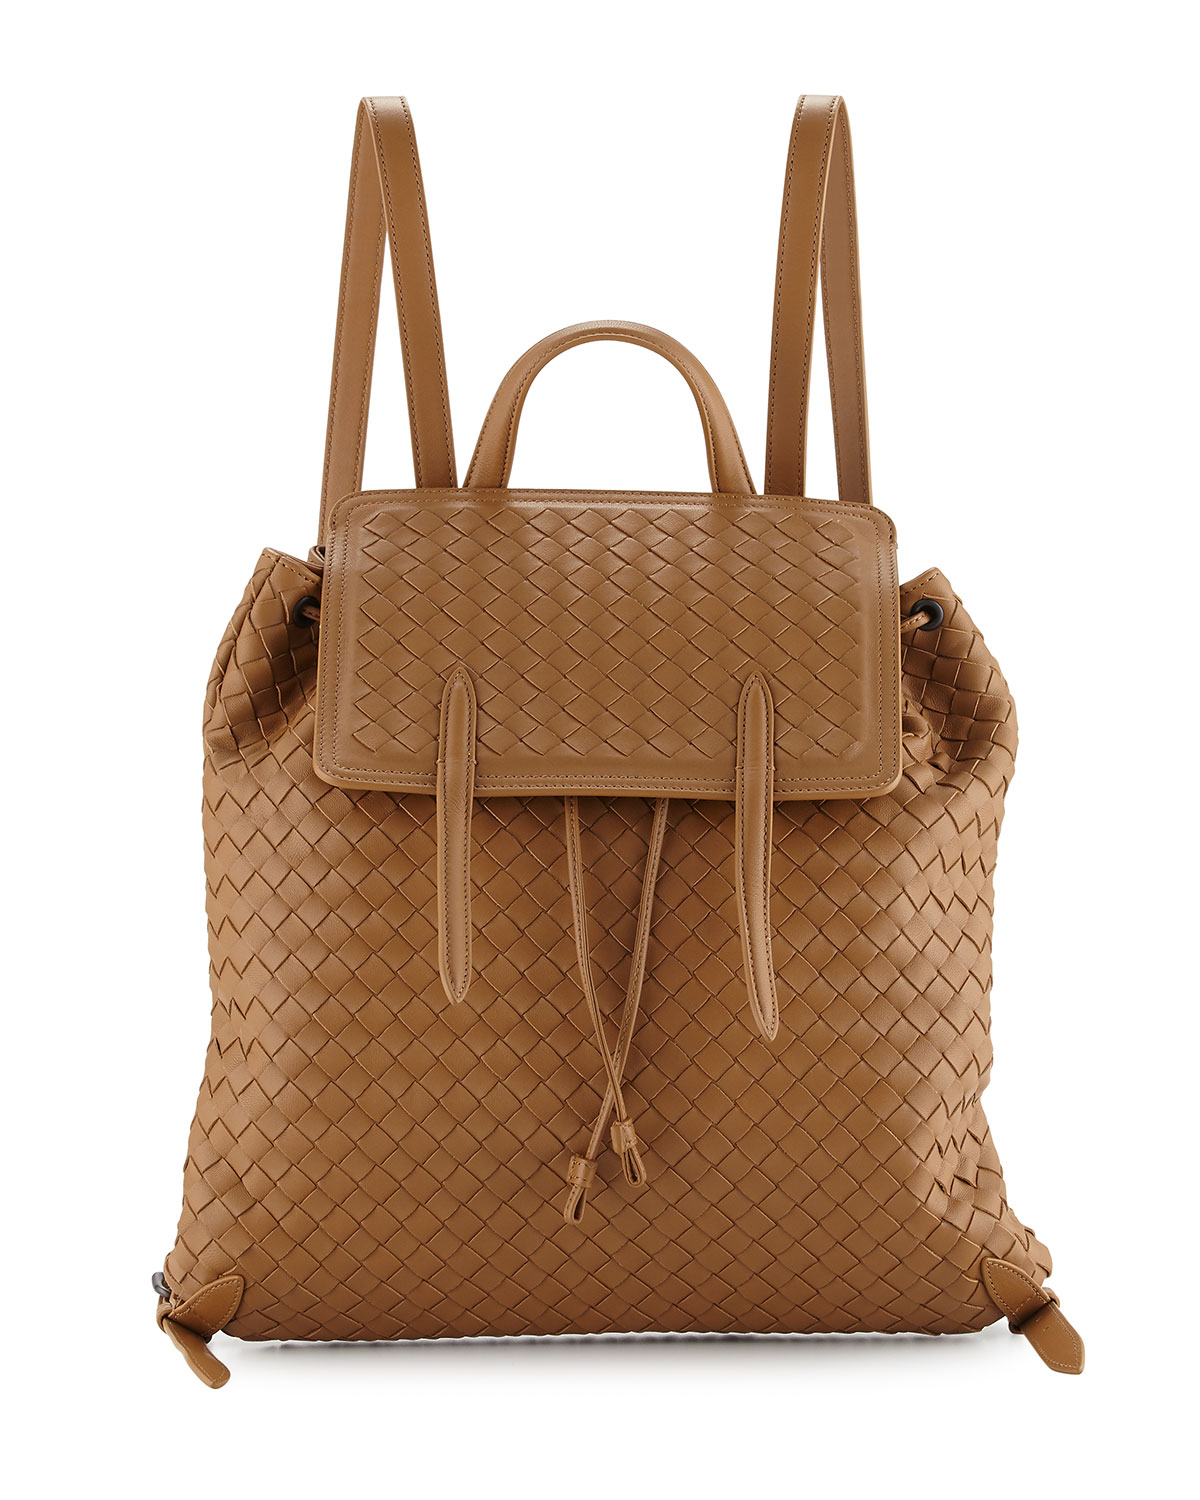 8489dce56f84 Bottega Veneta Medium Intrecciato Leather Backpack